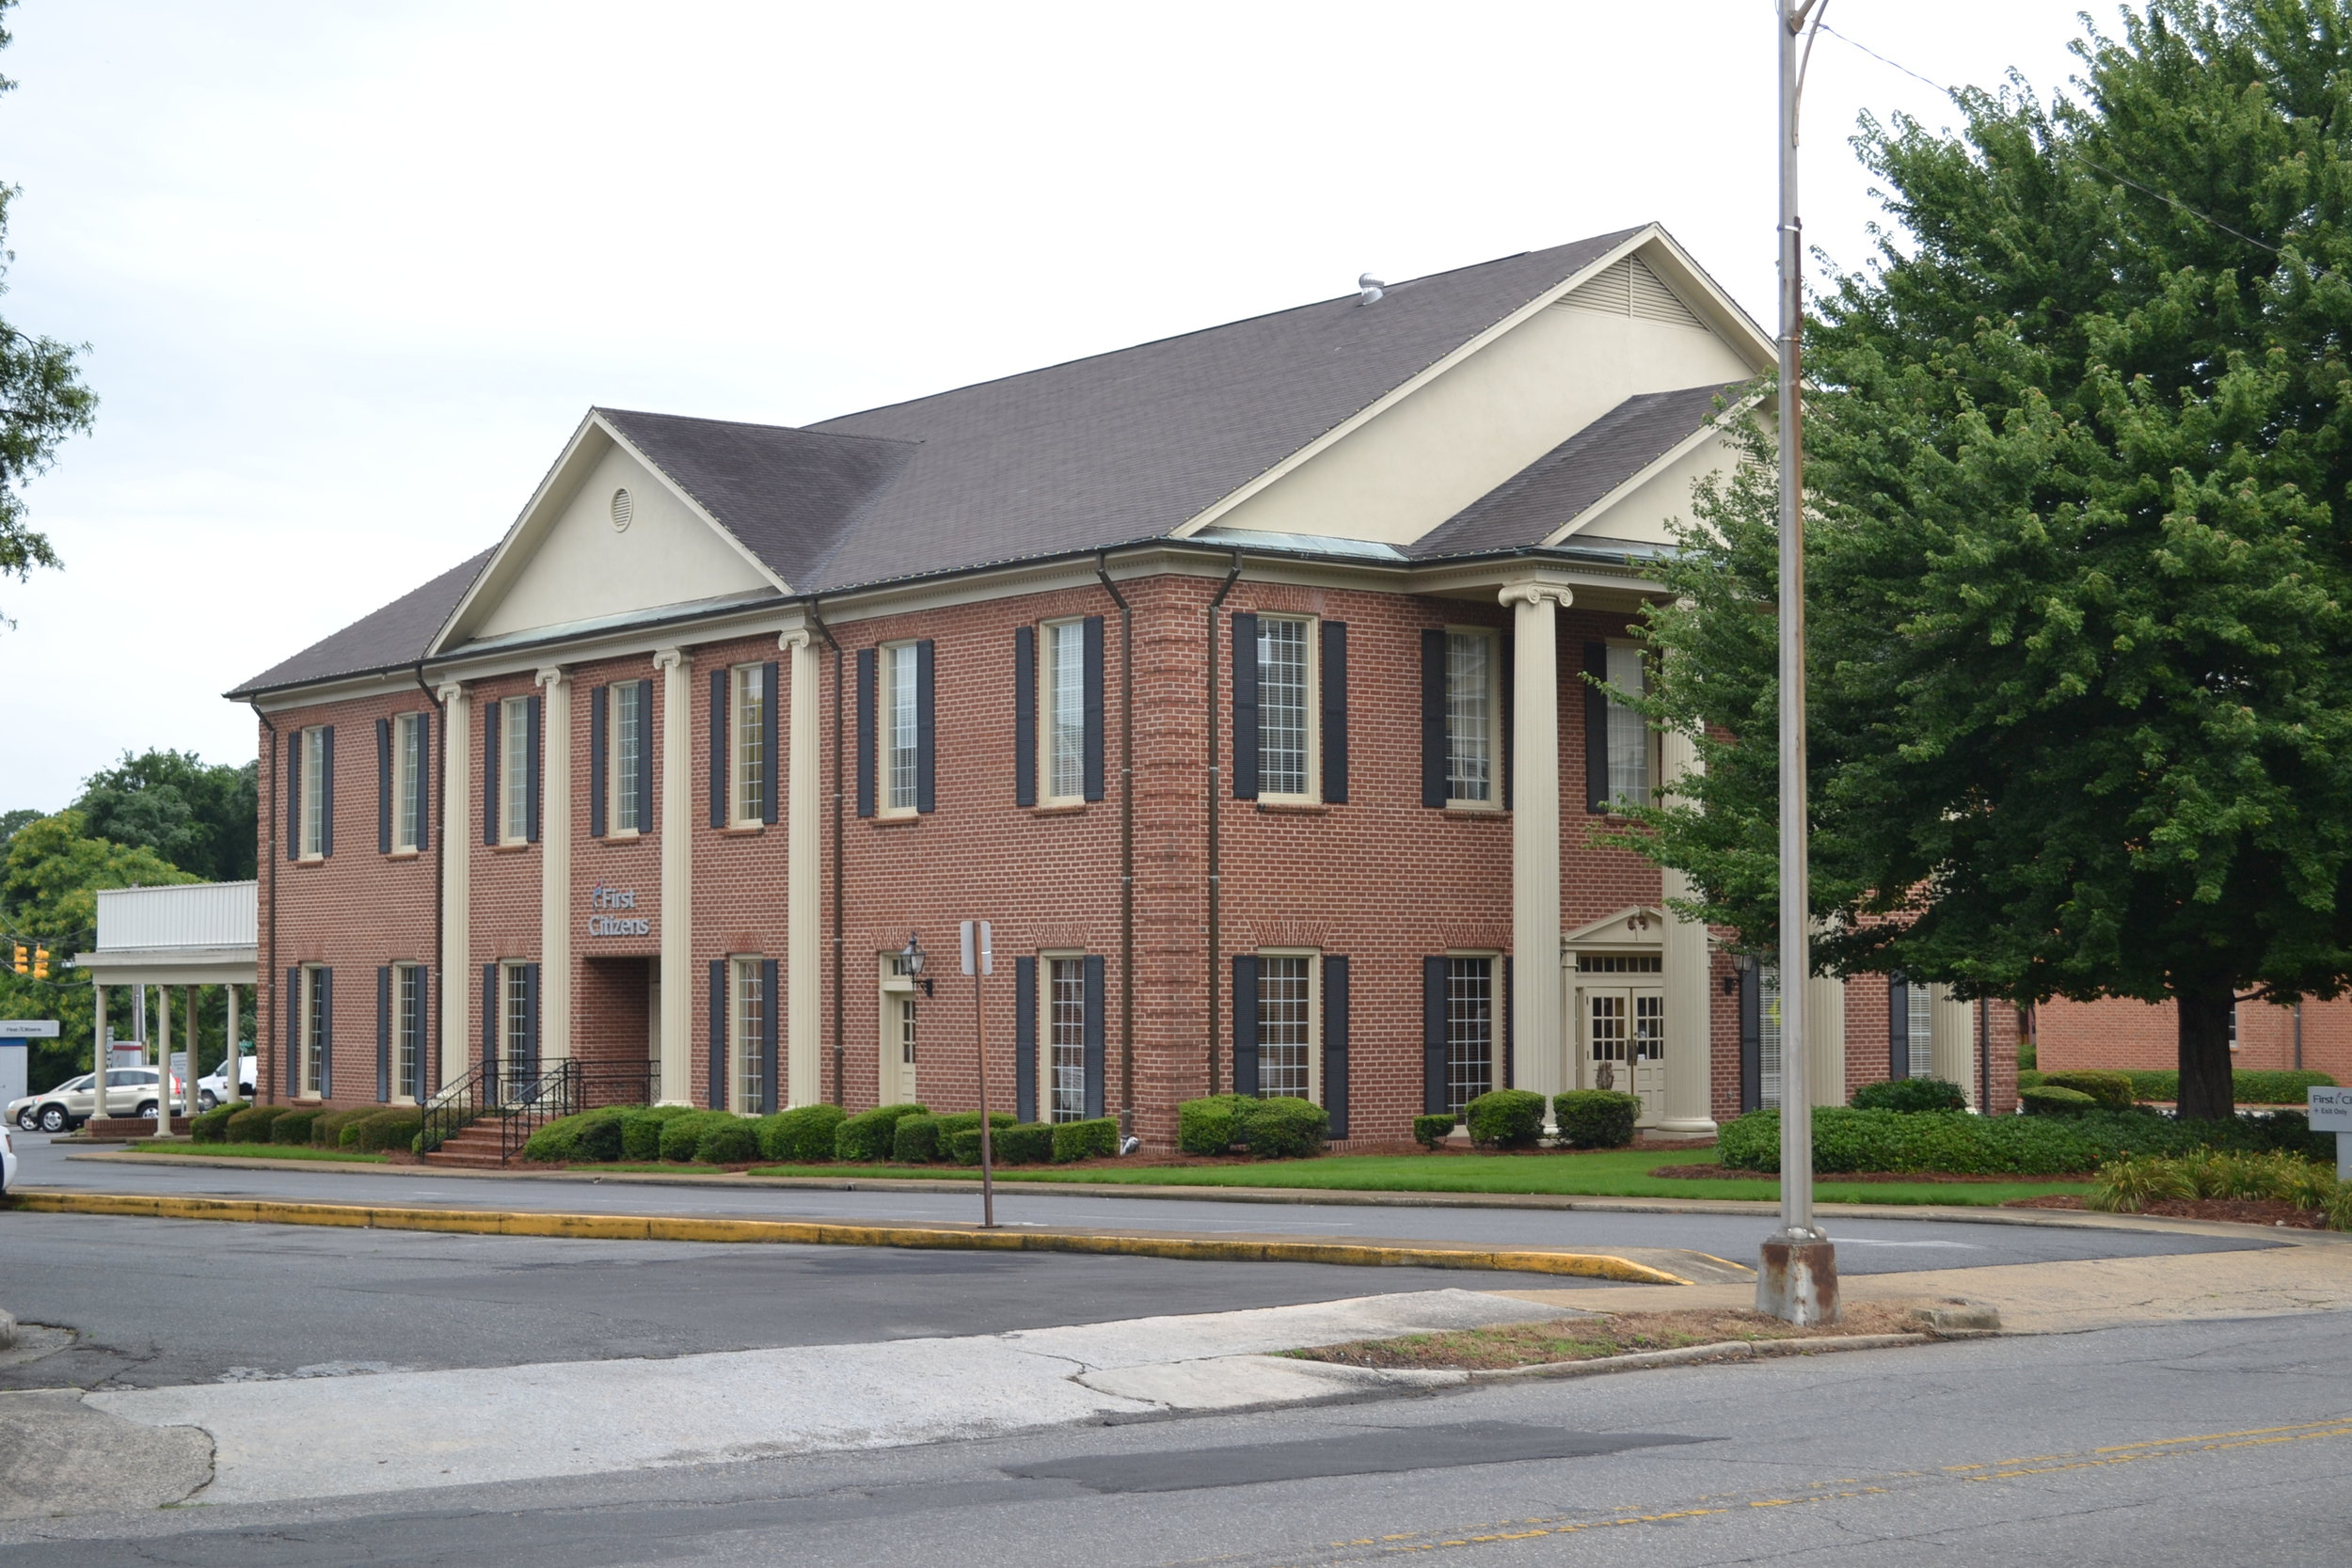 The current location of First Citizens Bank of Rock Hill, originally the site of the McElwee Home and later Reid's Furniture Co., which became Maxwell and Mayfield Furniture Company by the mid 20th century.